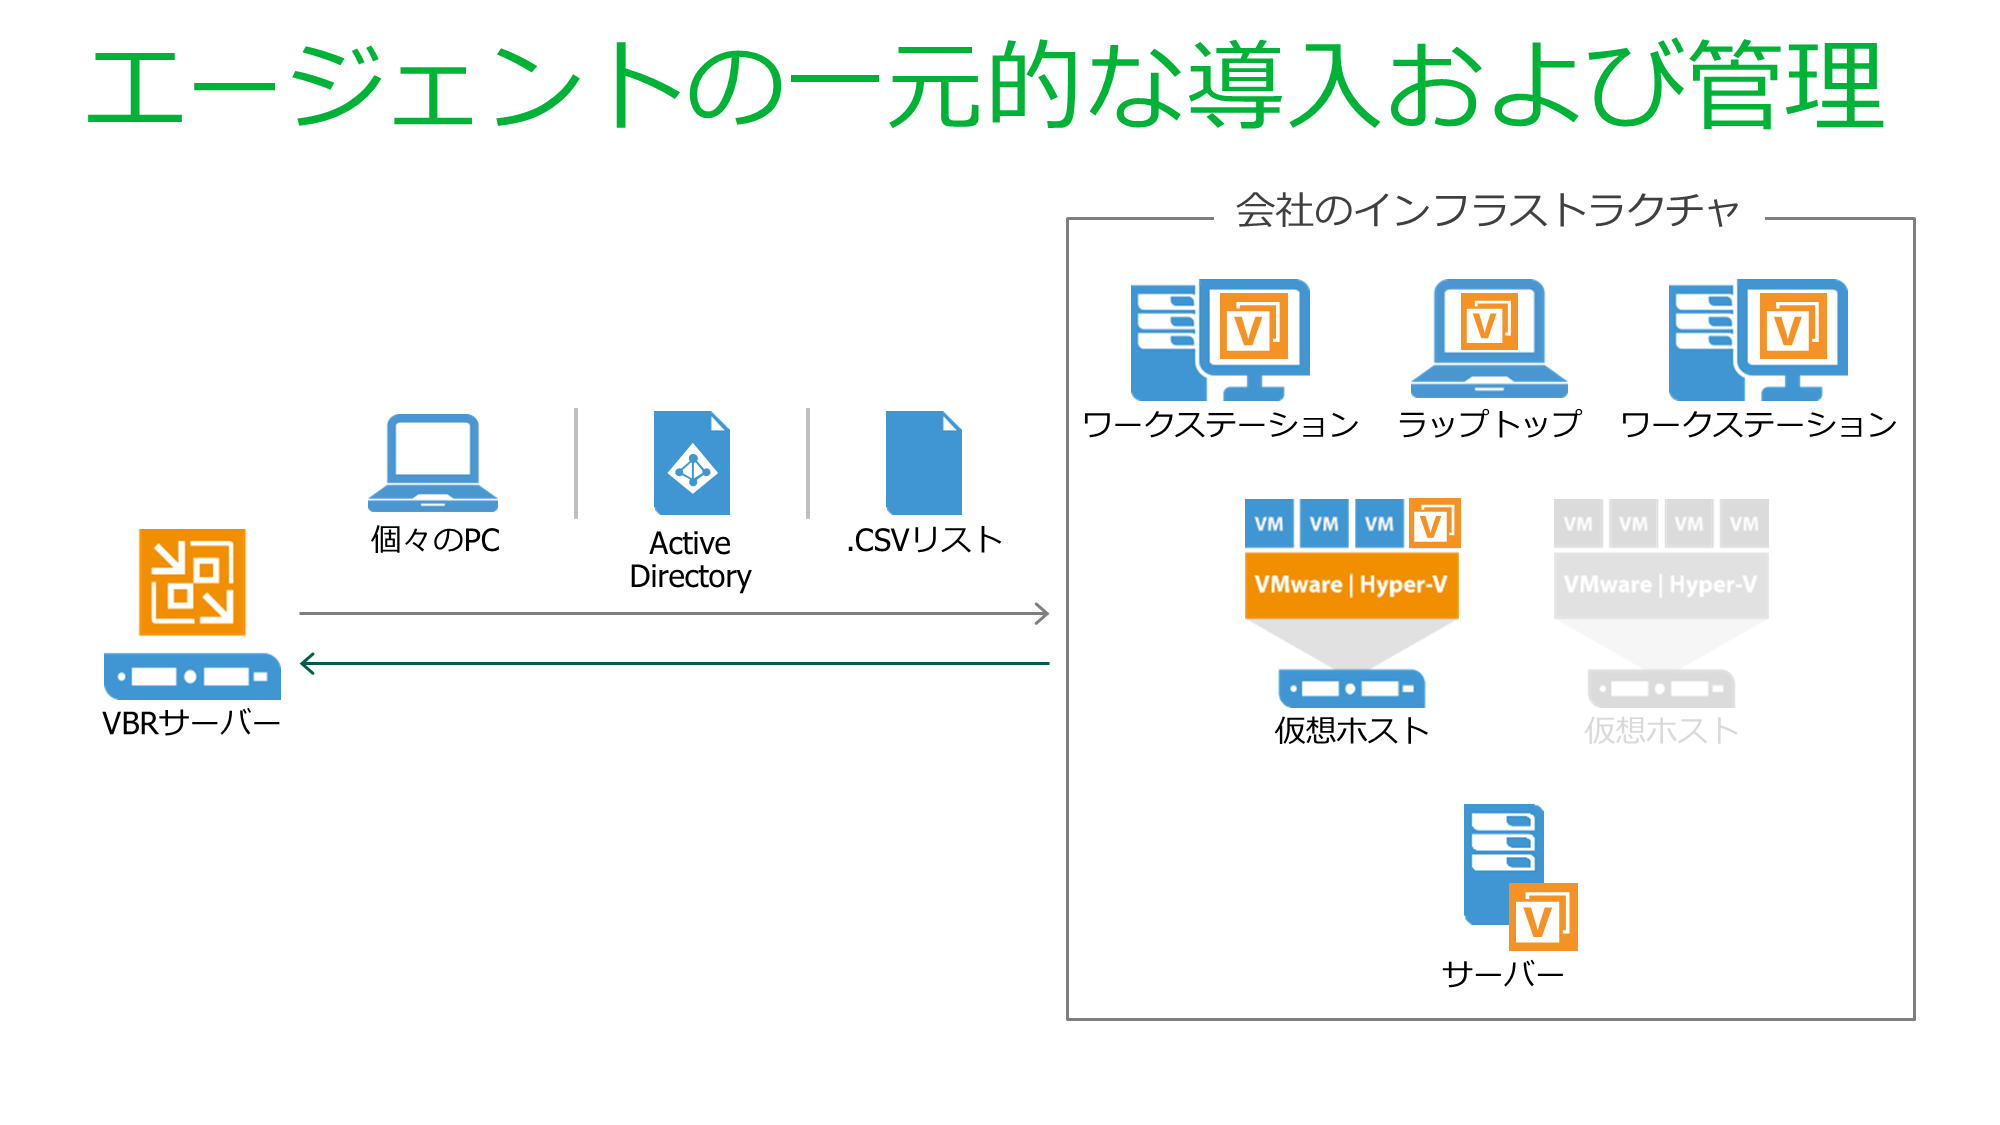 cr_u3_centralized_agent_management_jp.png